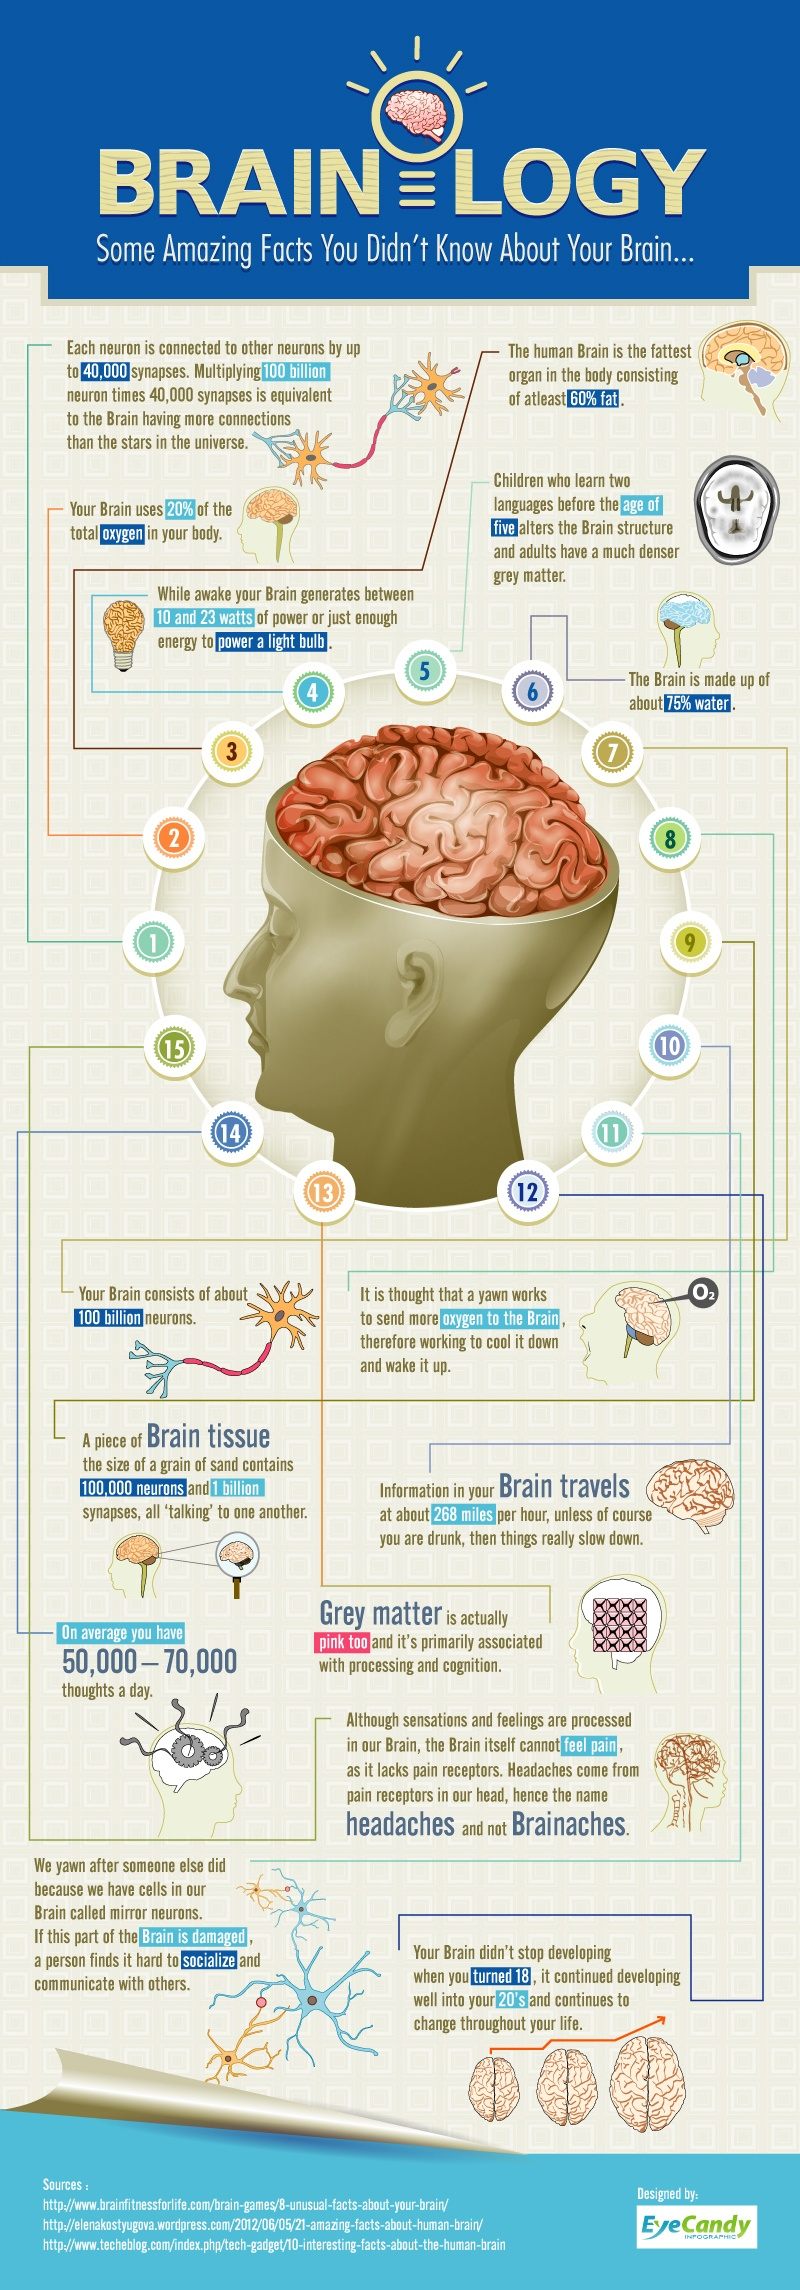 Intriguing Facts About The Human Brain Infographic